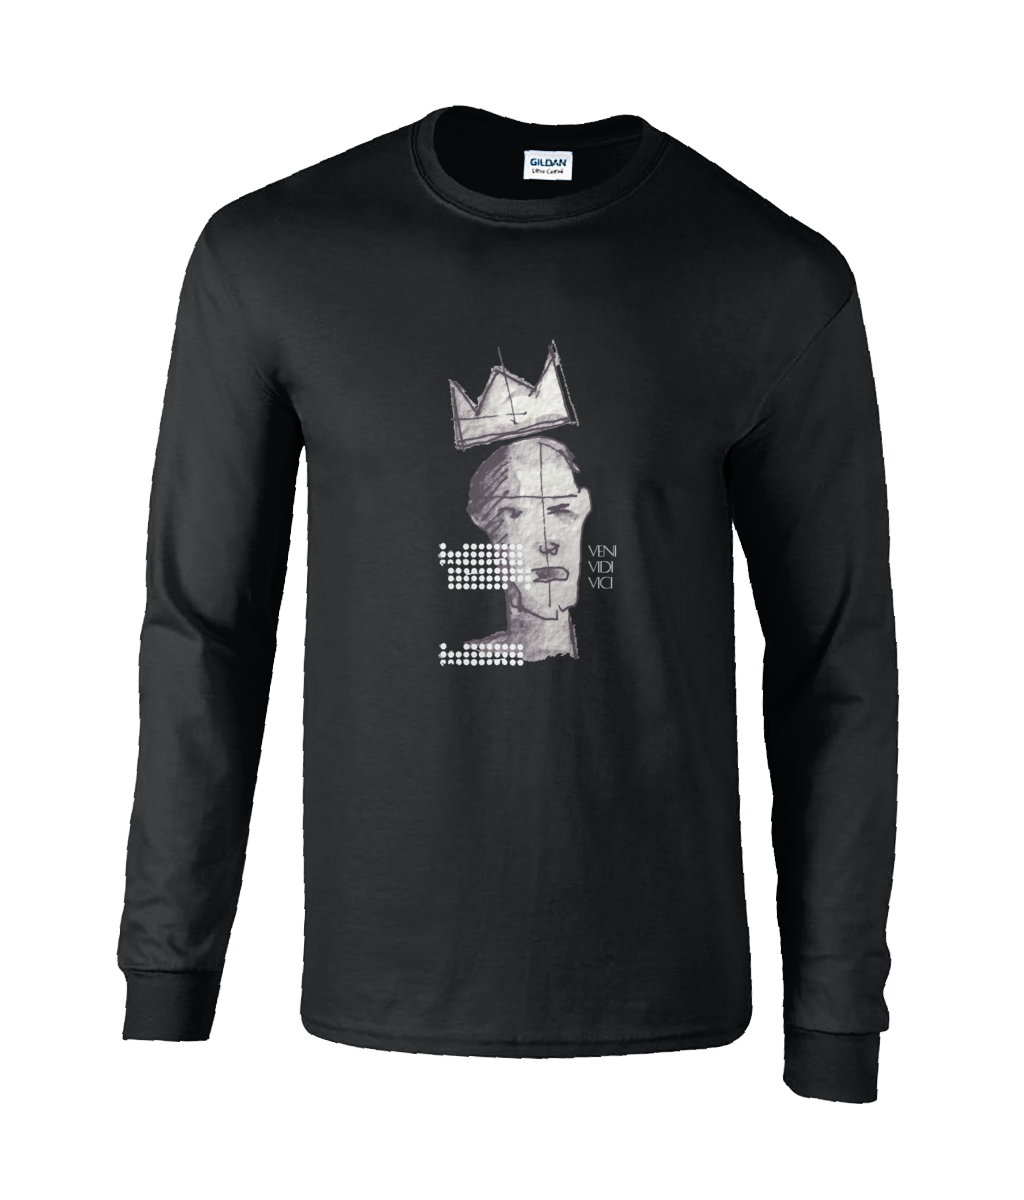 Men's Long Sleeve 3 - DICTUM (w)